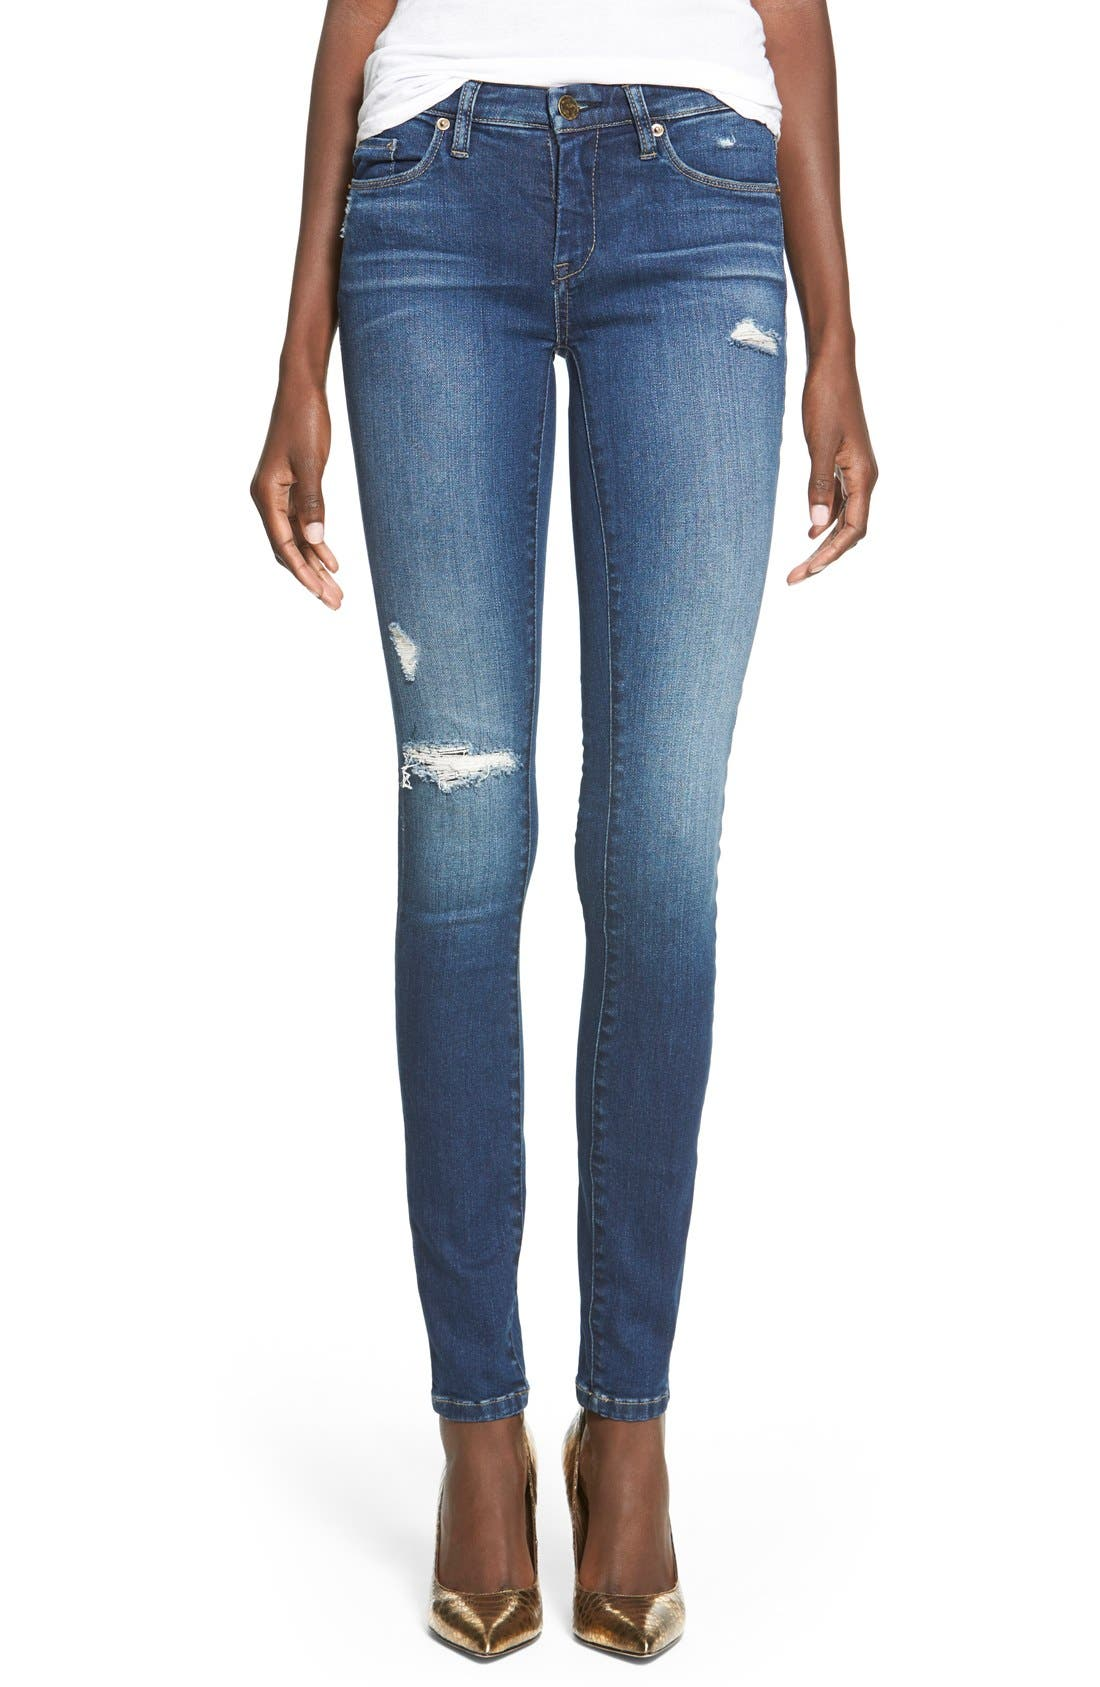 BLANKNYC 'Hotel' Distressed Skinny Jeans, Main, color, 400